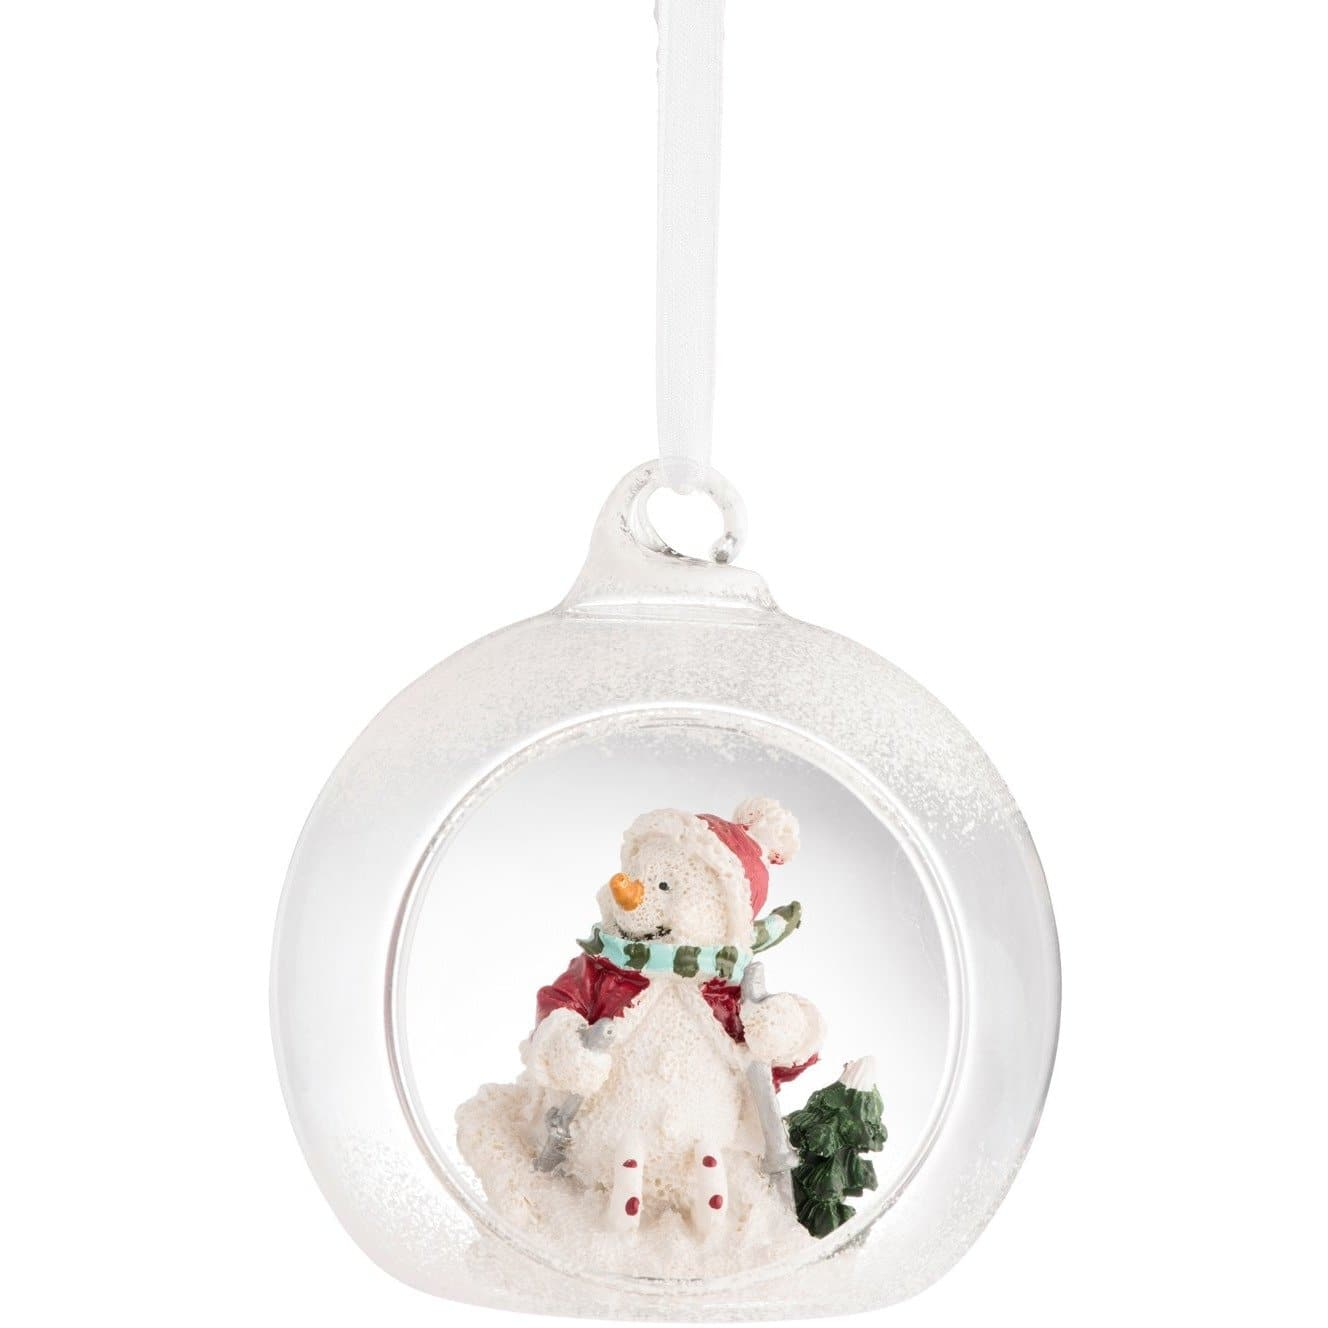 Skiing Snowman Hanging Ornament - Galway Irish Crystal